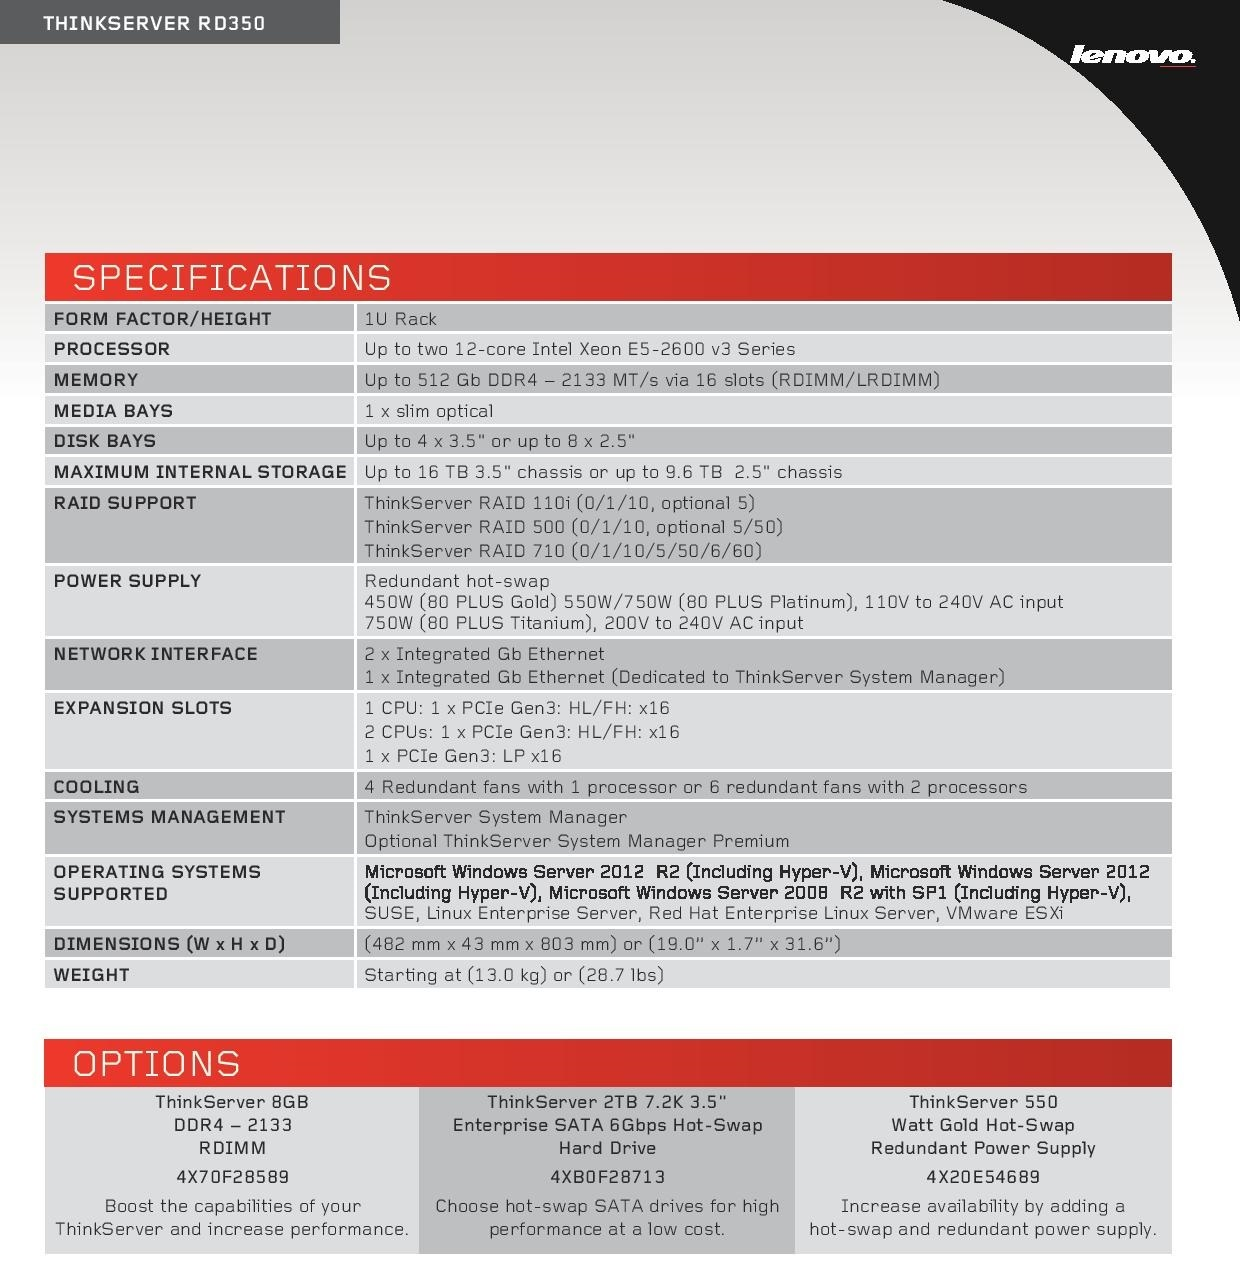 thinkserver-rd350-datasheet-lpn_pd-page-002